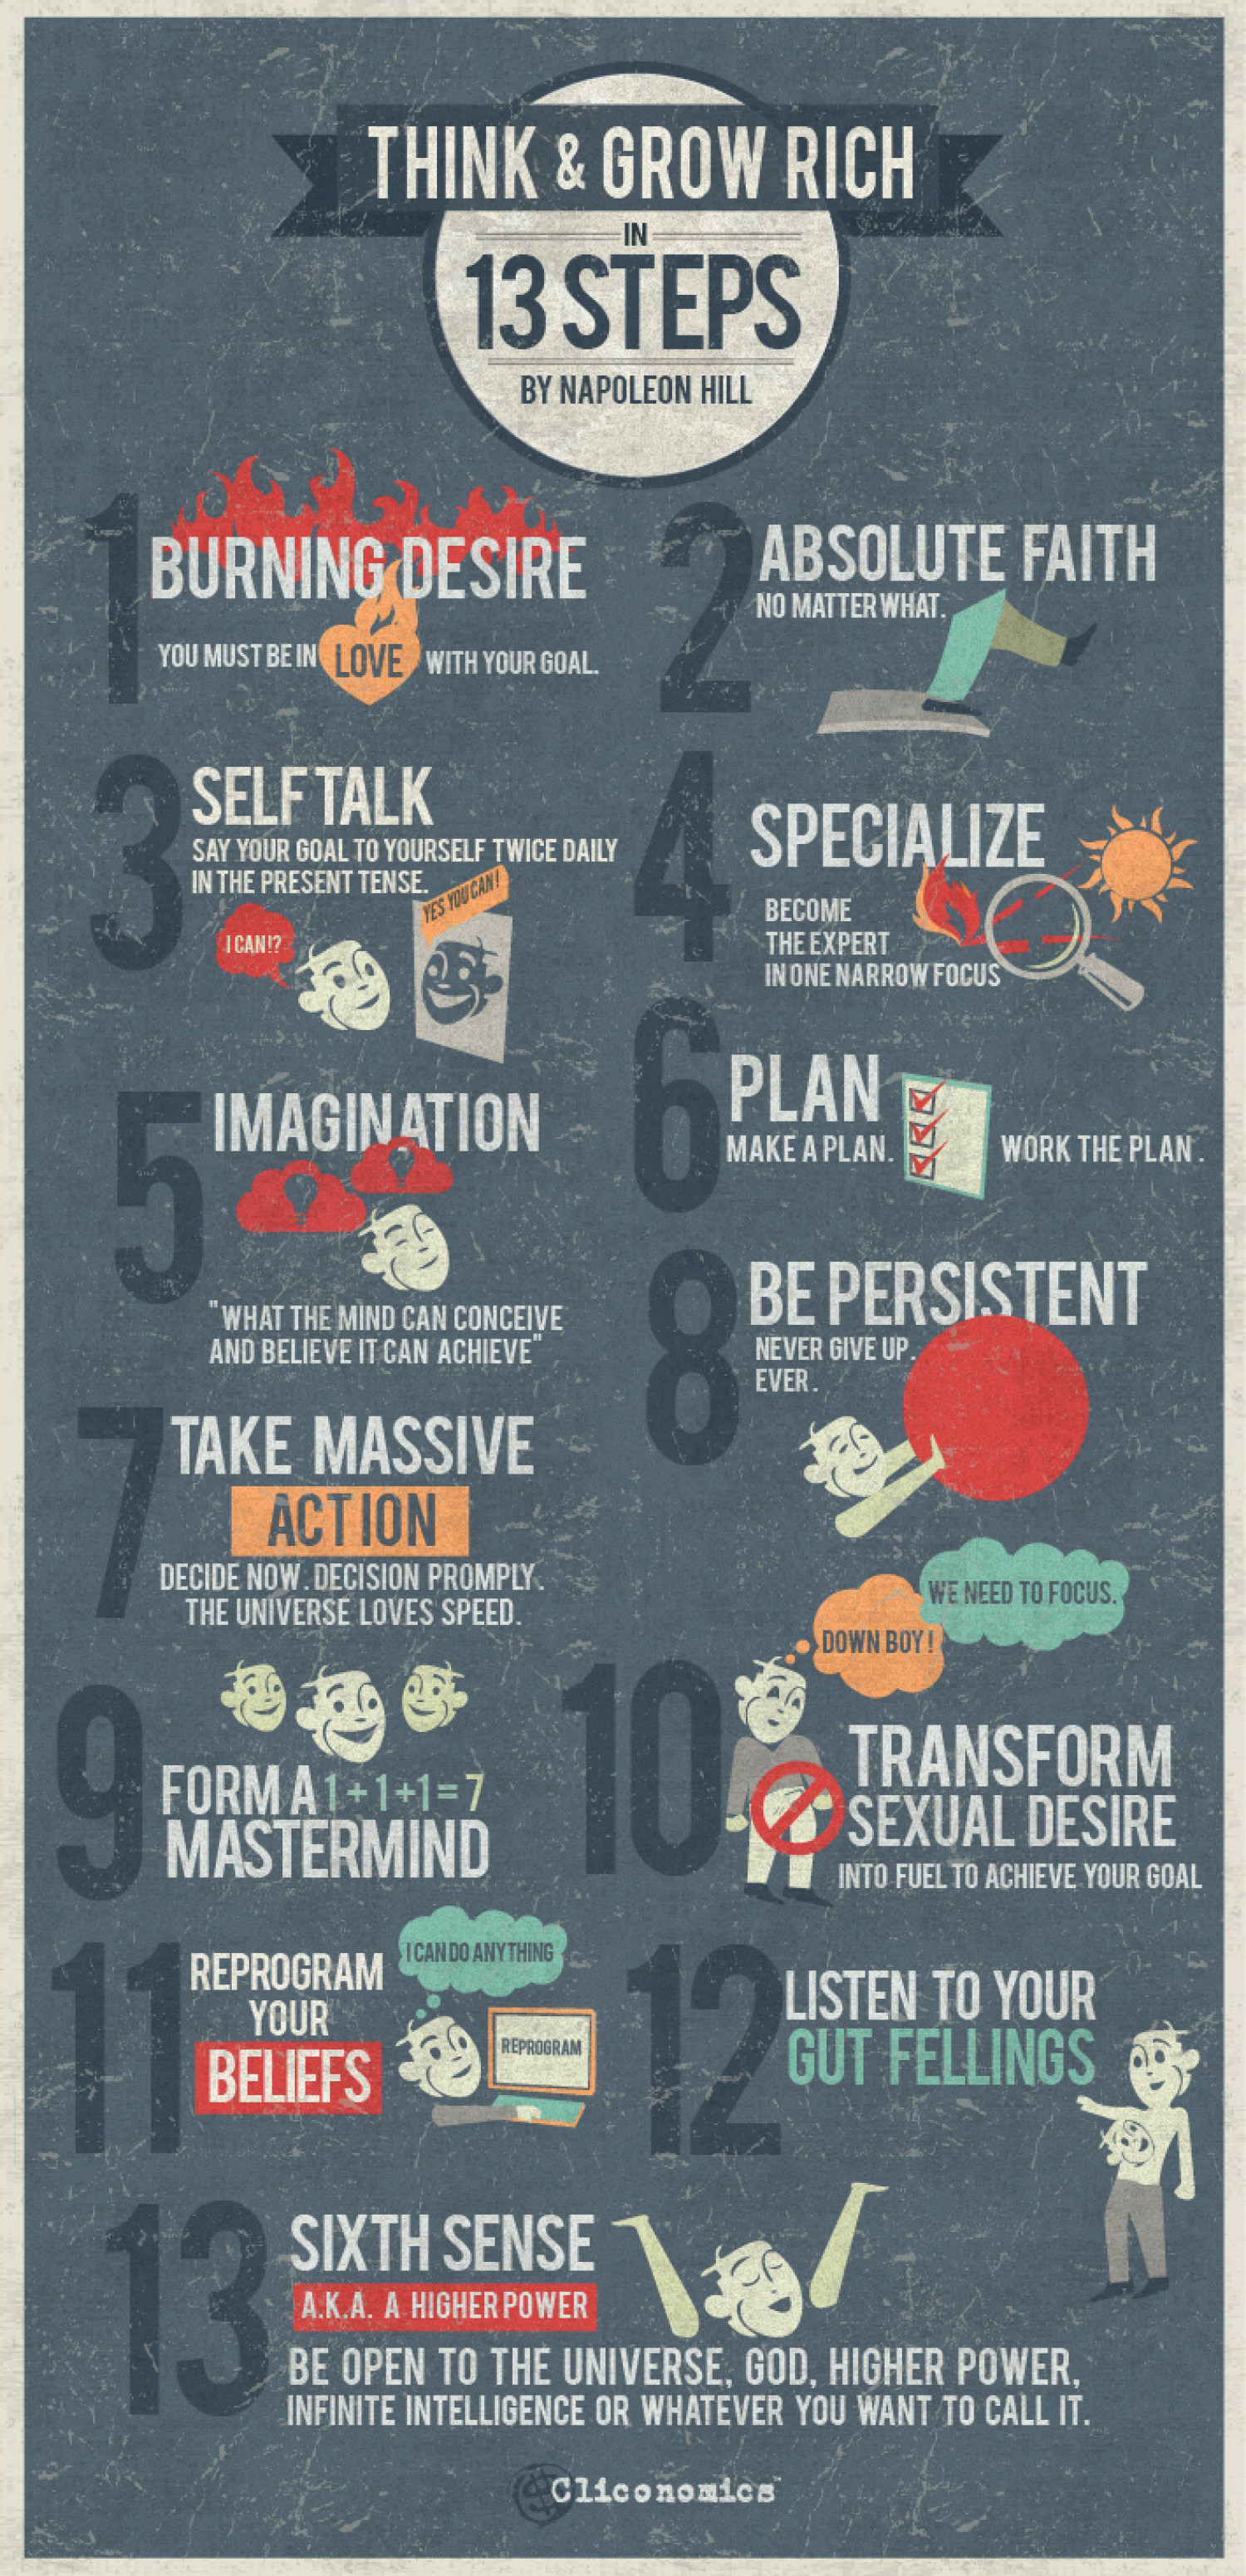 Think & Grow Rich in 13 Steps Infographic